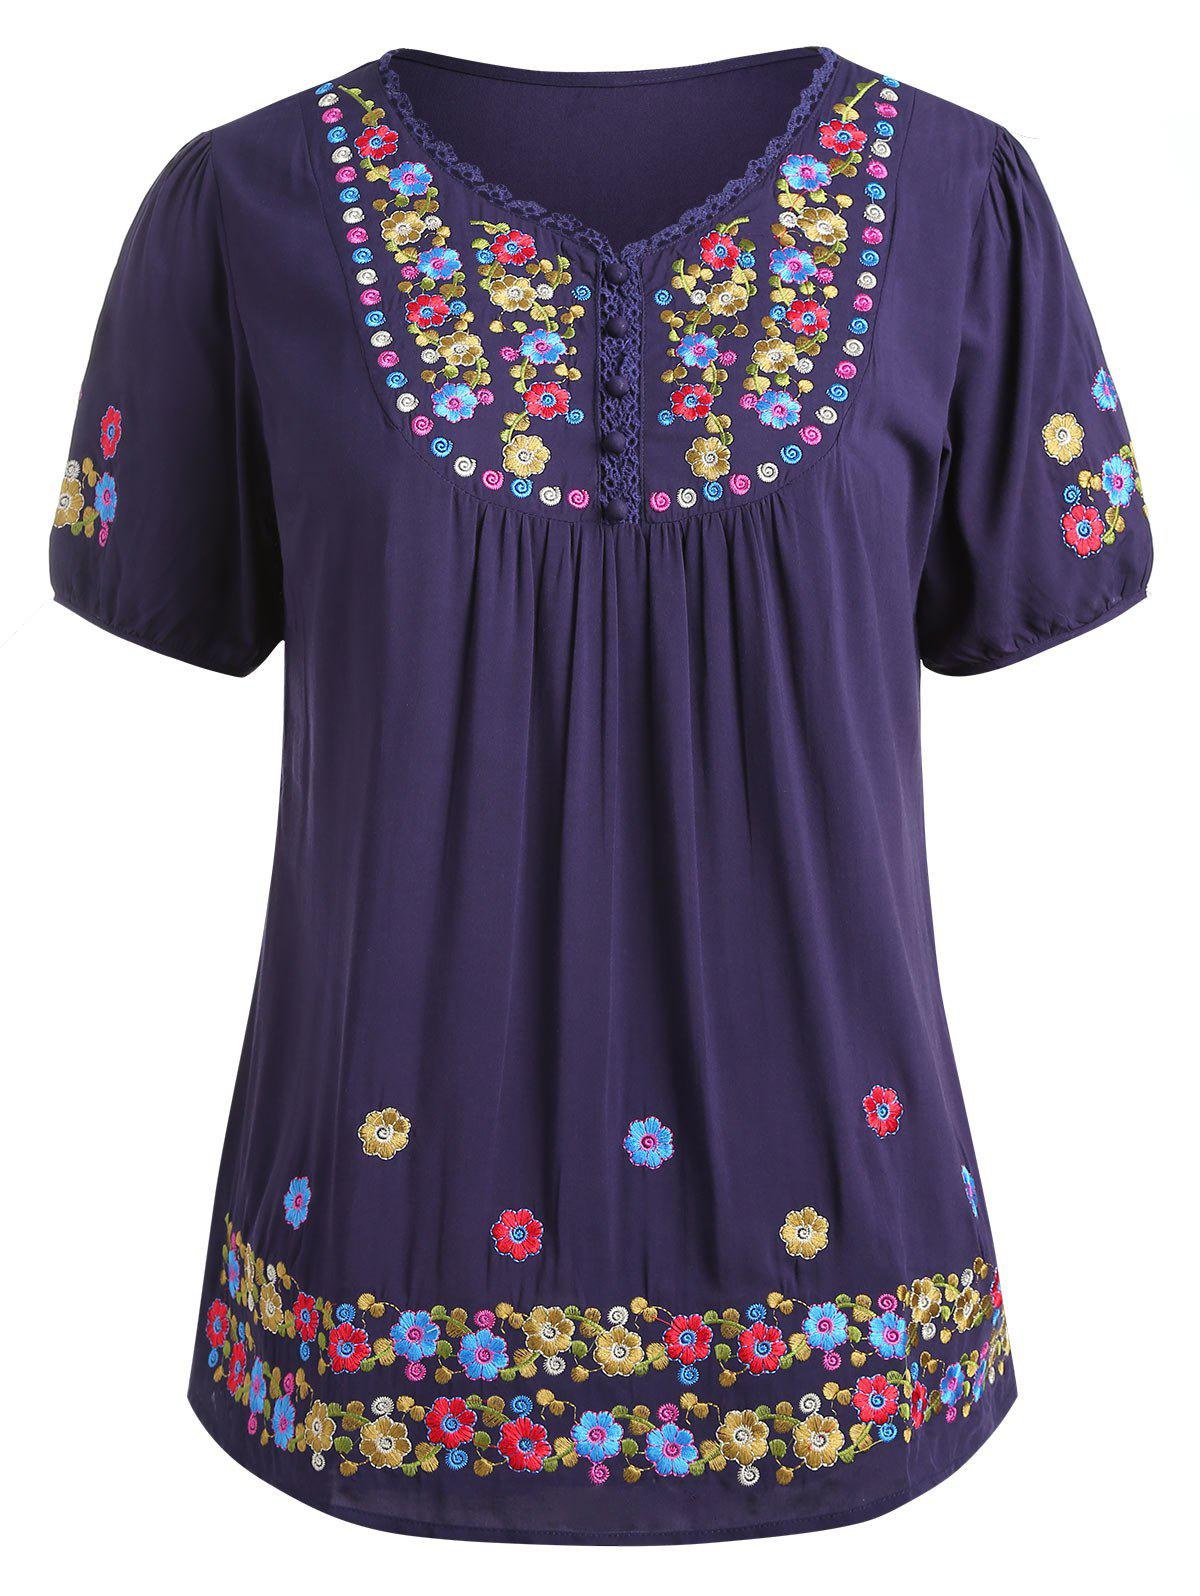 Online Floral Embroidery Plus Size Short Sleeve T-shirt